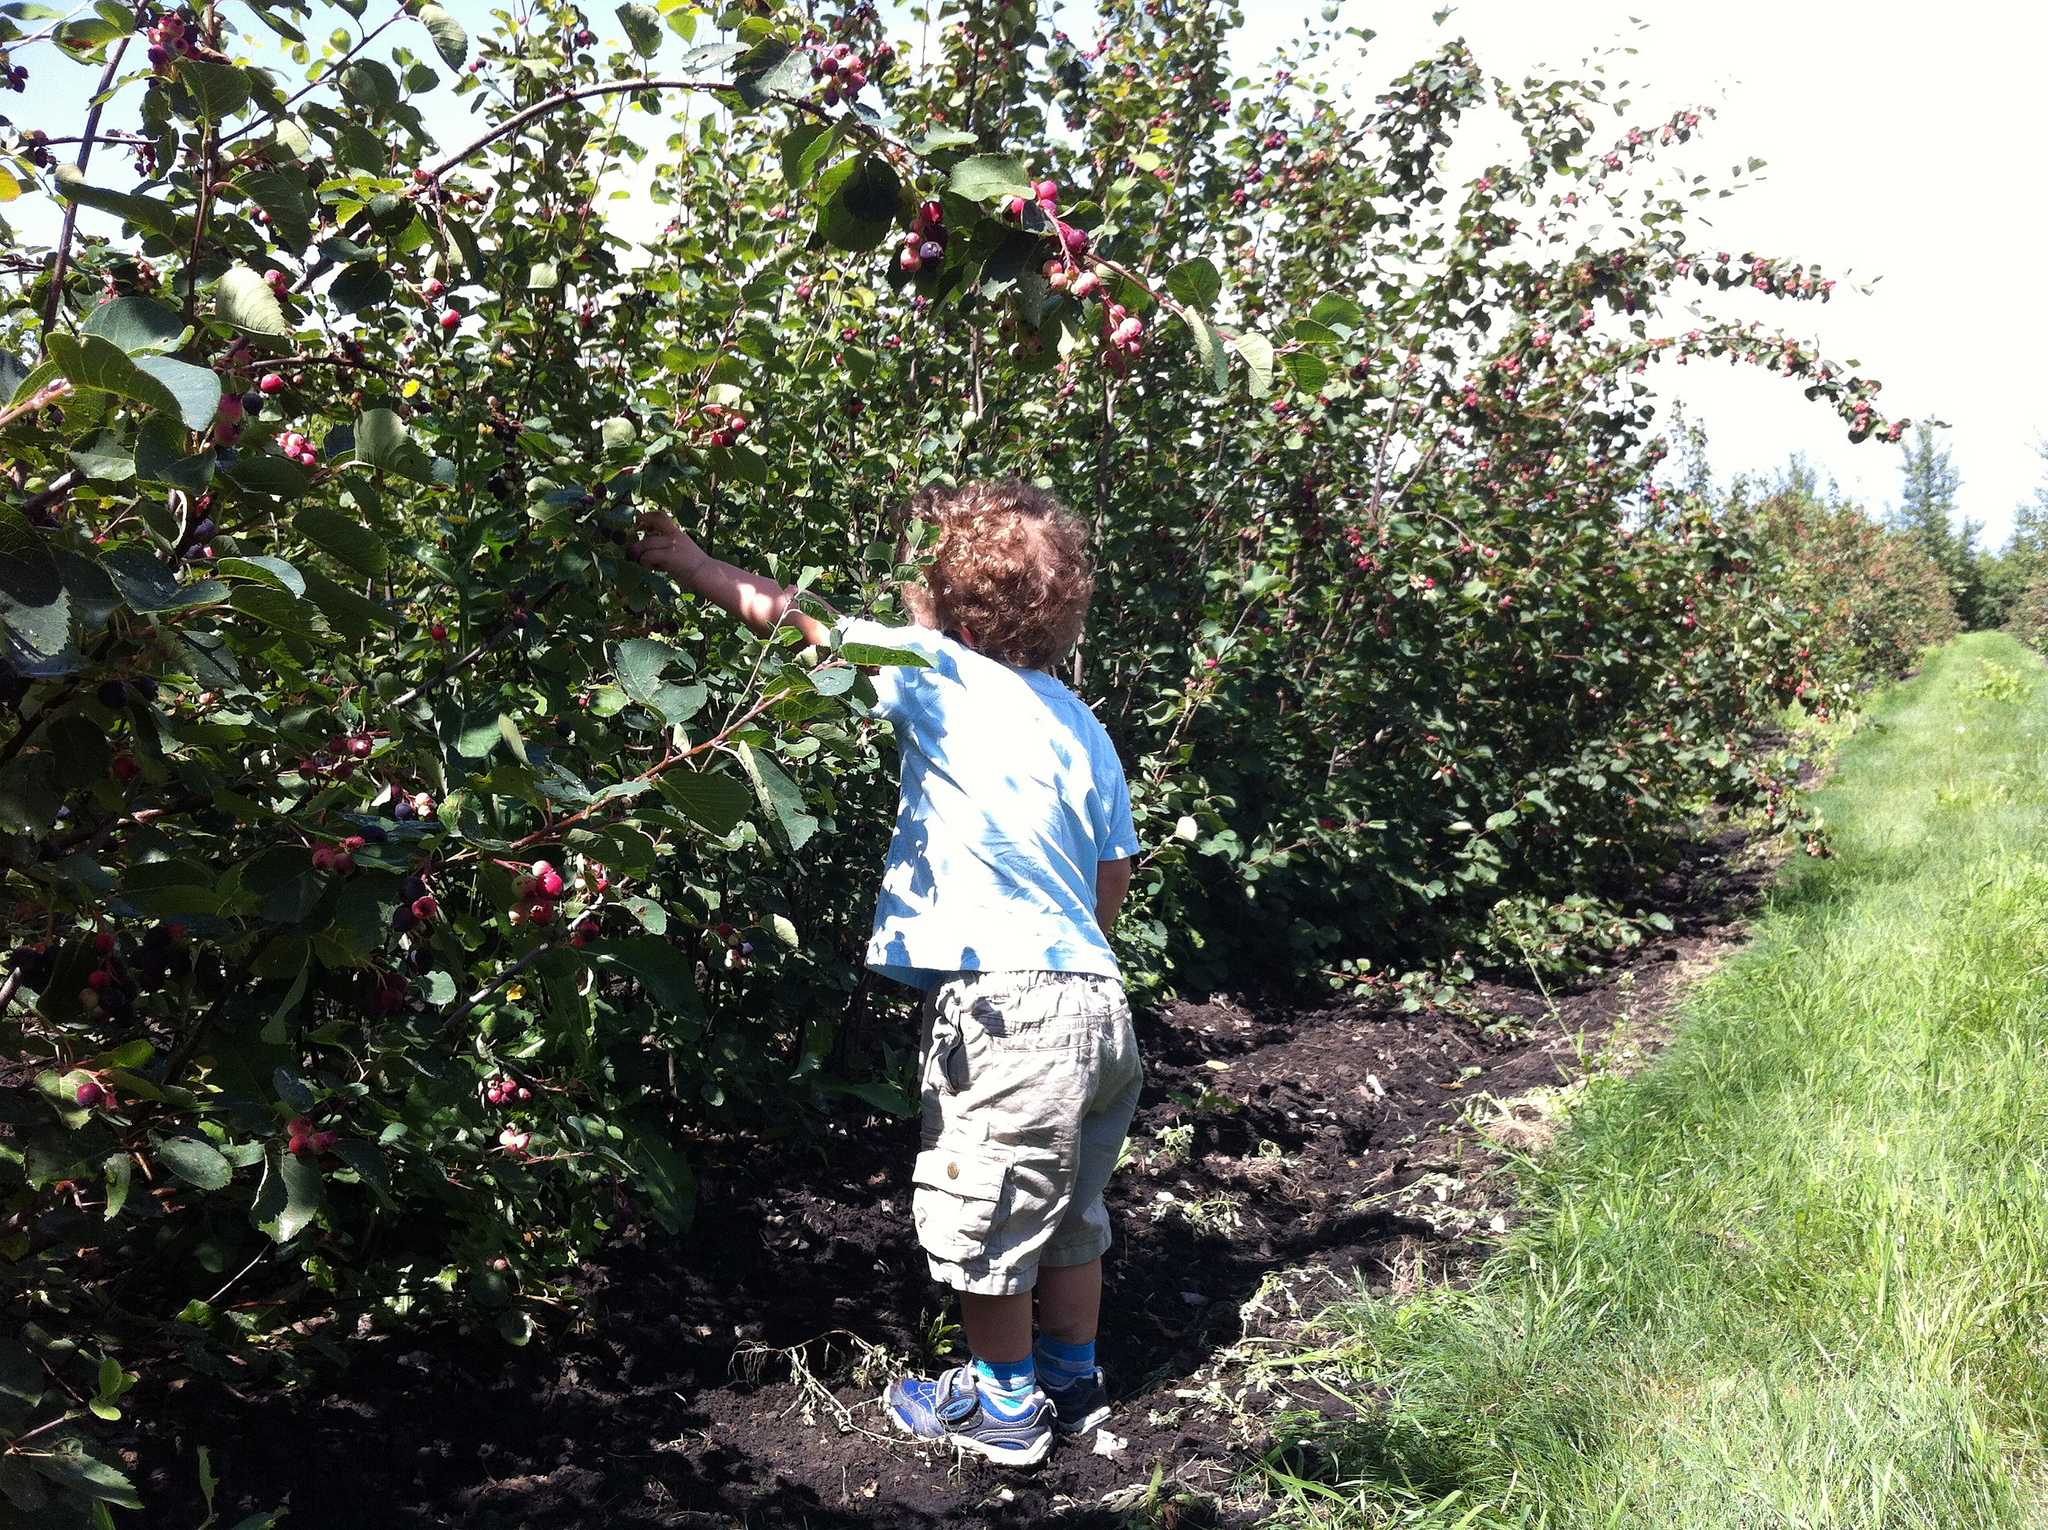 Charlie picking Saskatoon berries